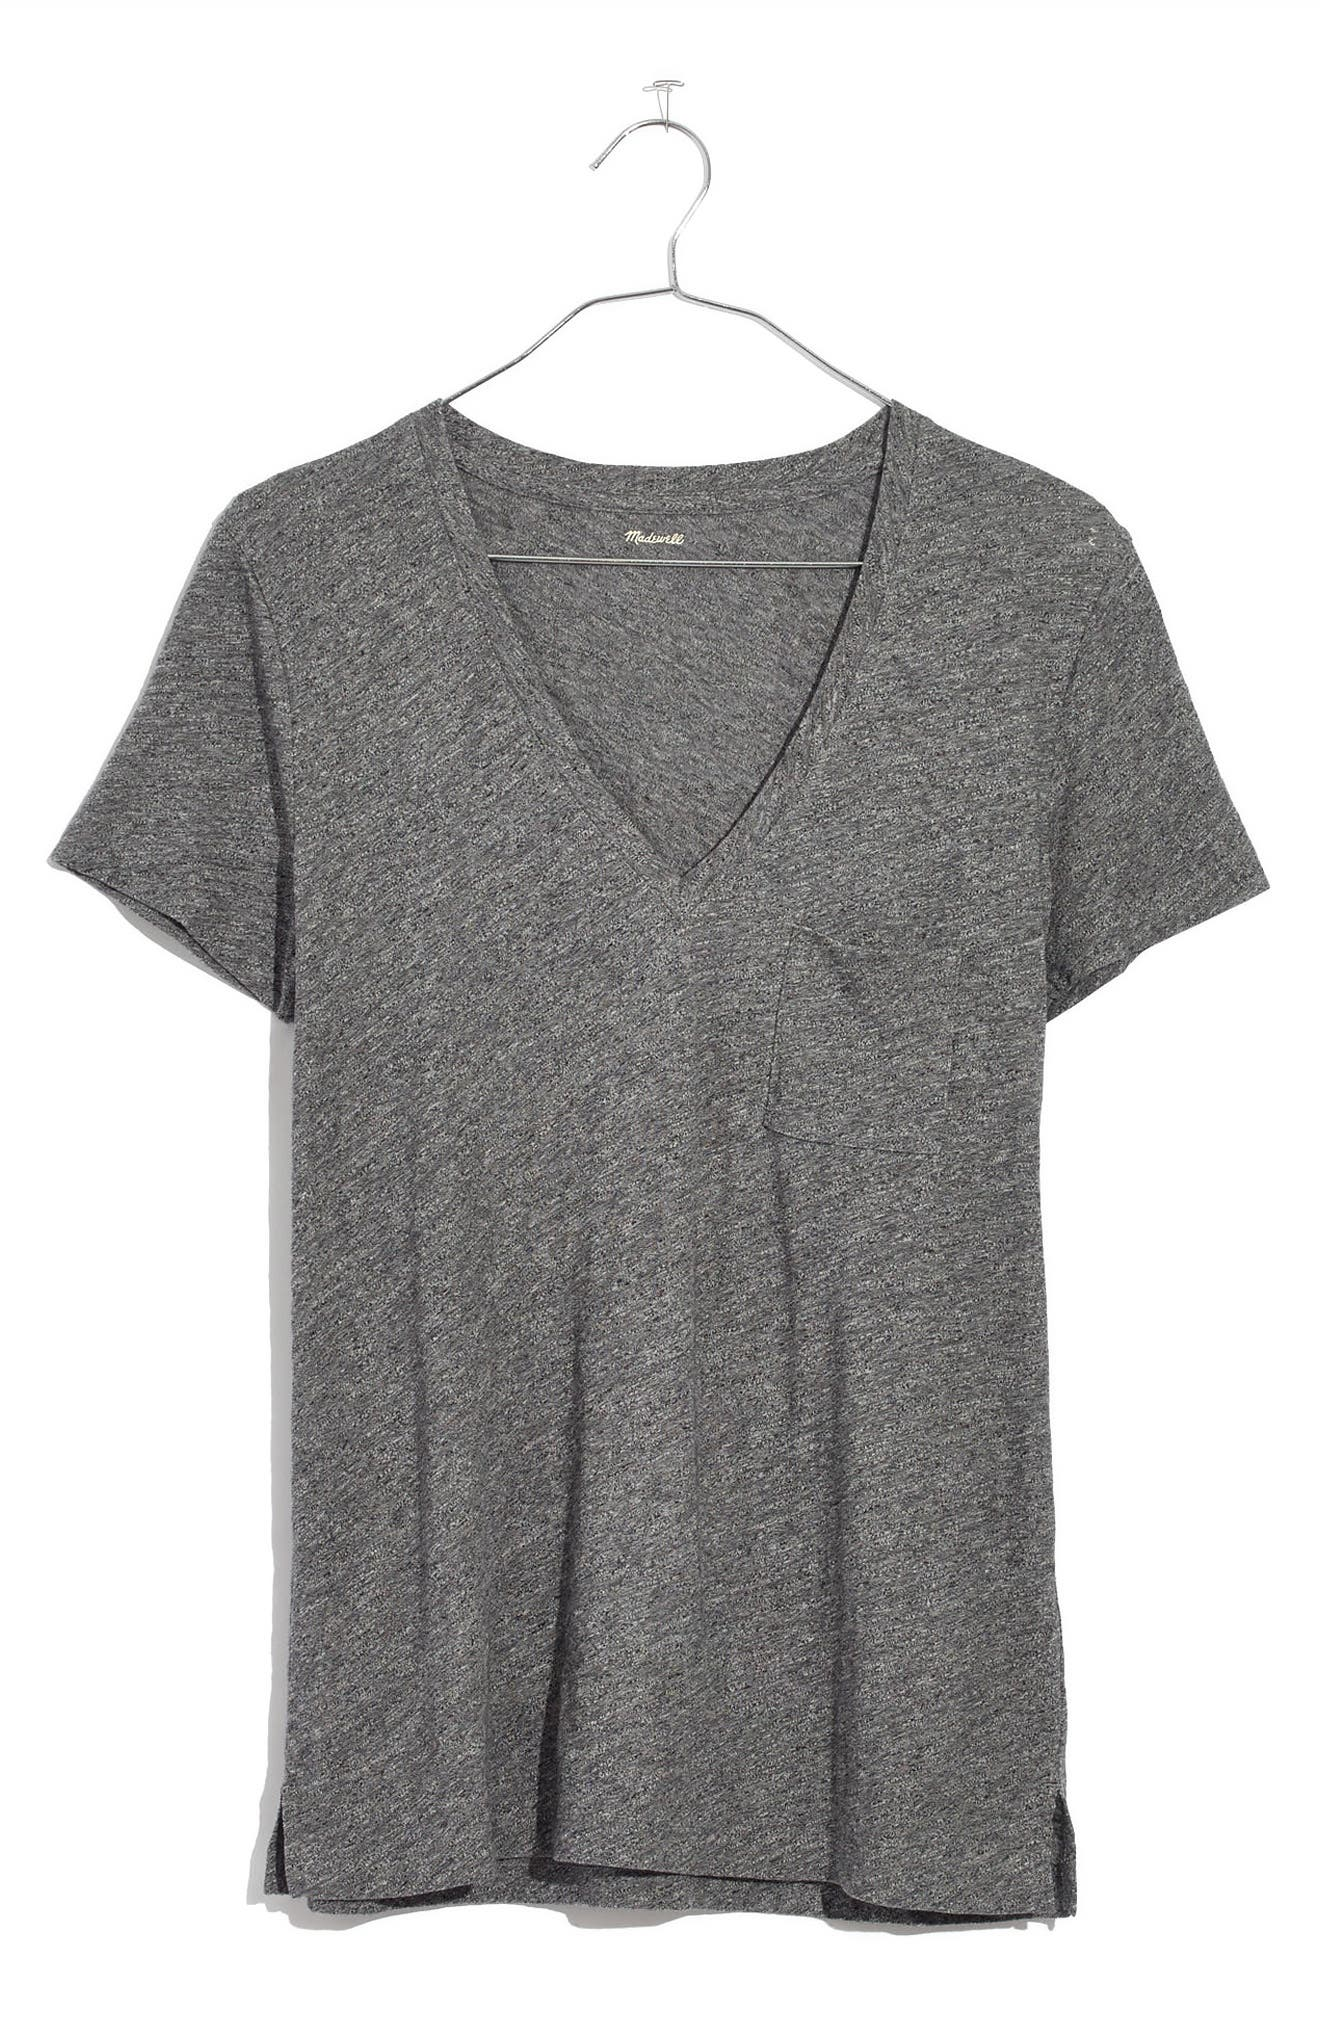 MADEWELL, Whisper Cotton V-Neck Pocket Tee, Alternate thumbnail 6, color, HEATHER MERCURY